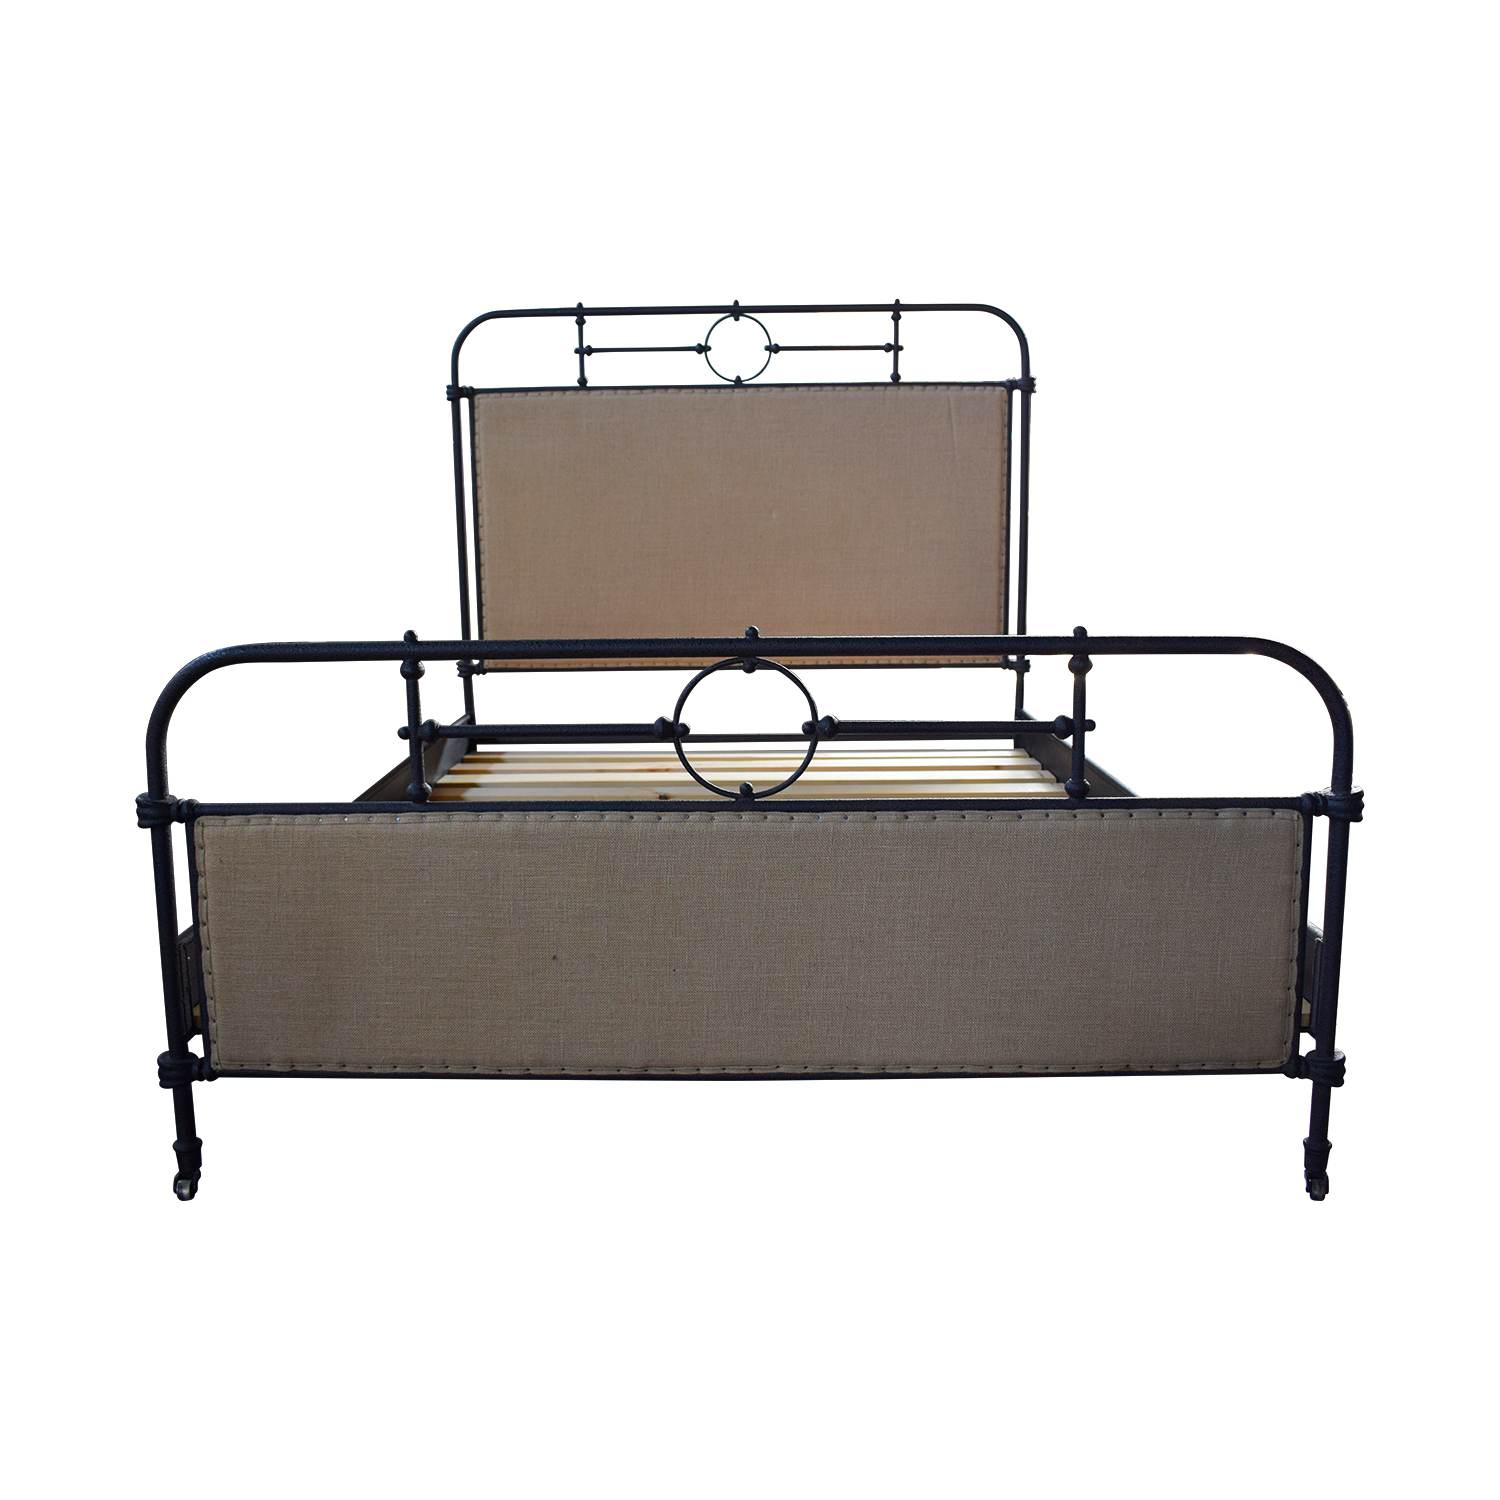 ABC Home Upholstered Metal Queen Bed ABC Home